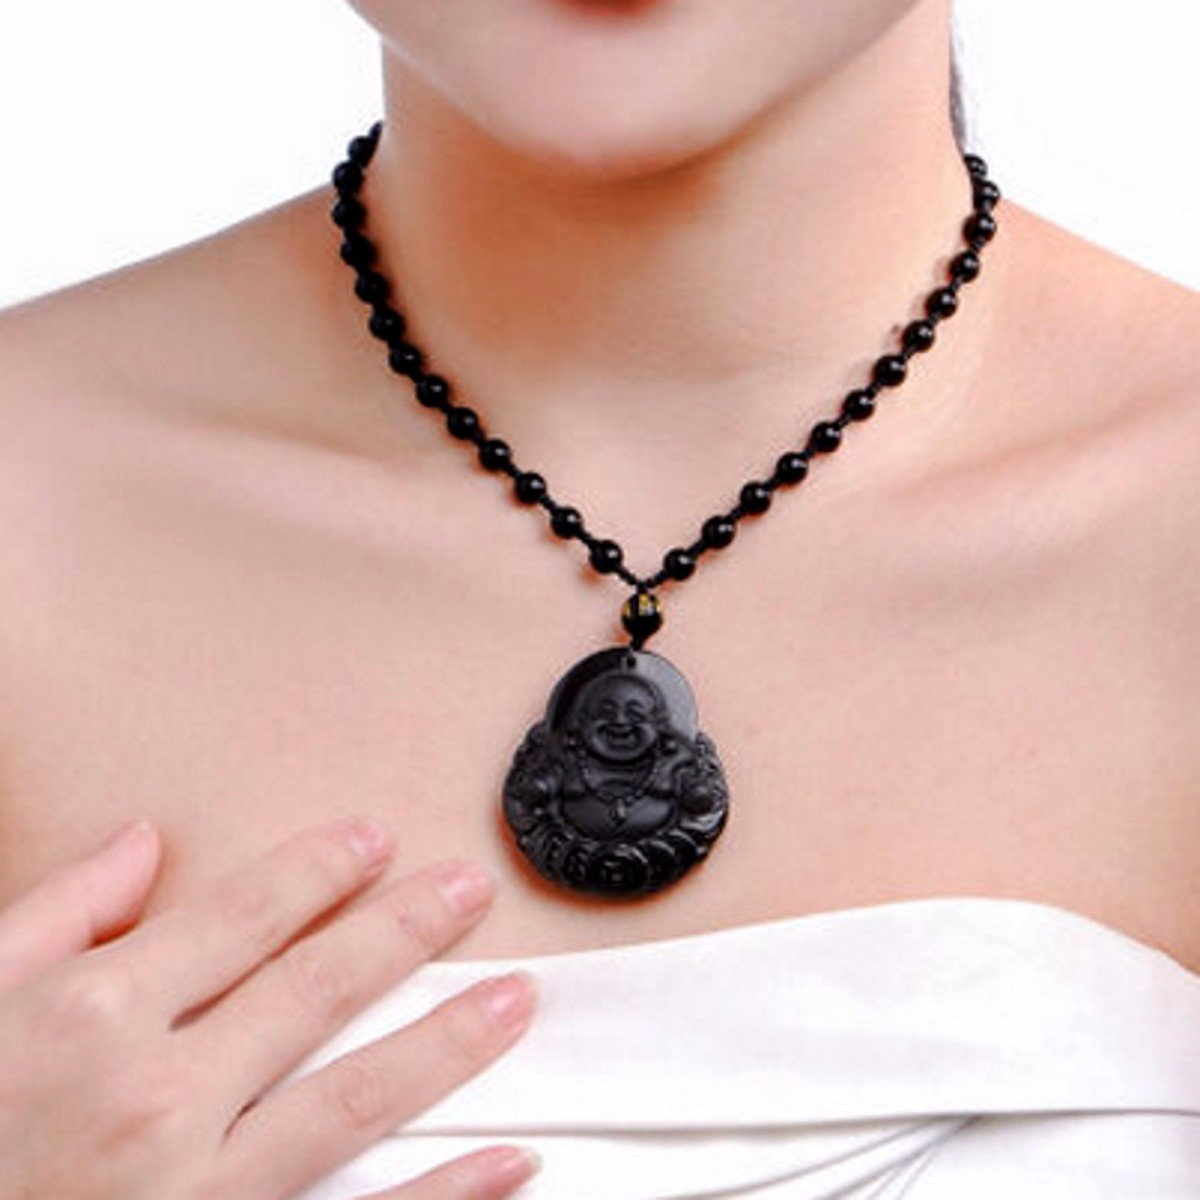 Black Obsidian Buddha Pendant Lucky Luck Beads Prayer Necklace Chain